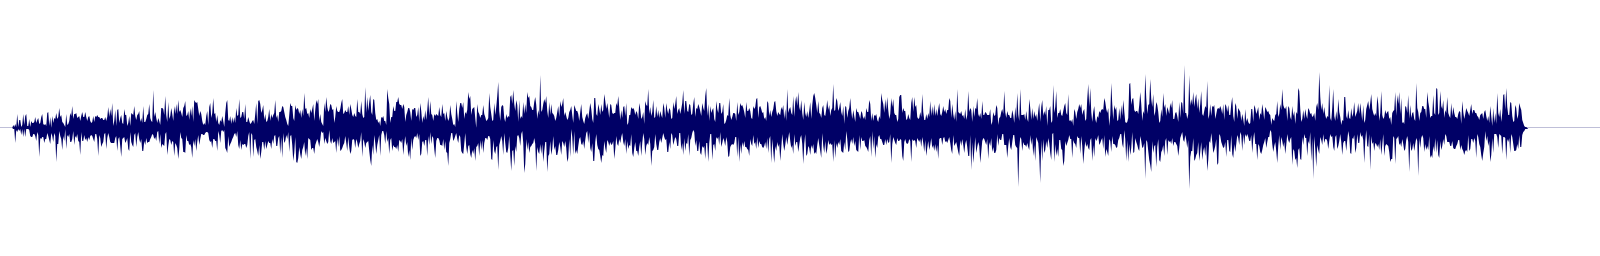 waveform of track #99435